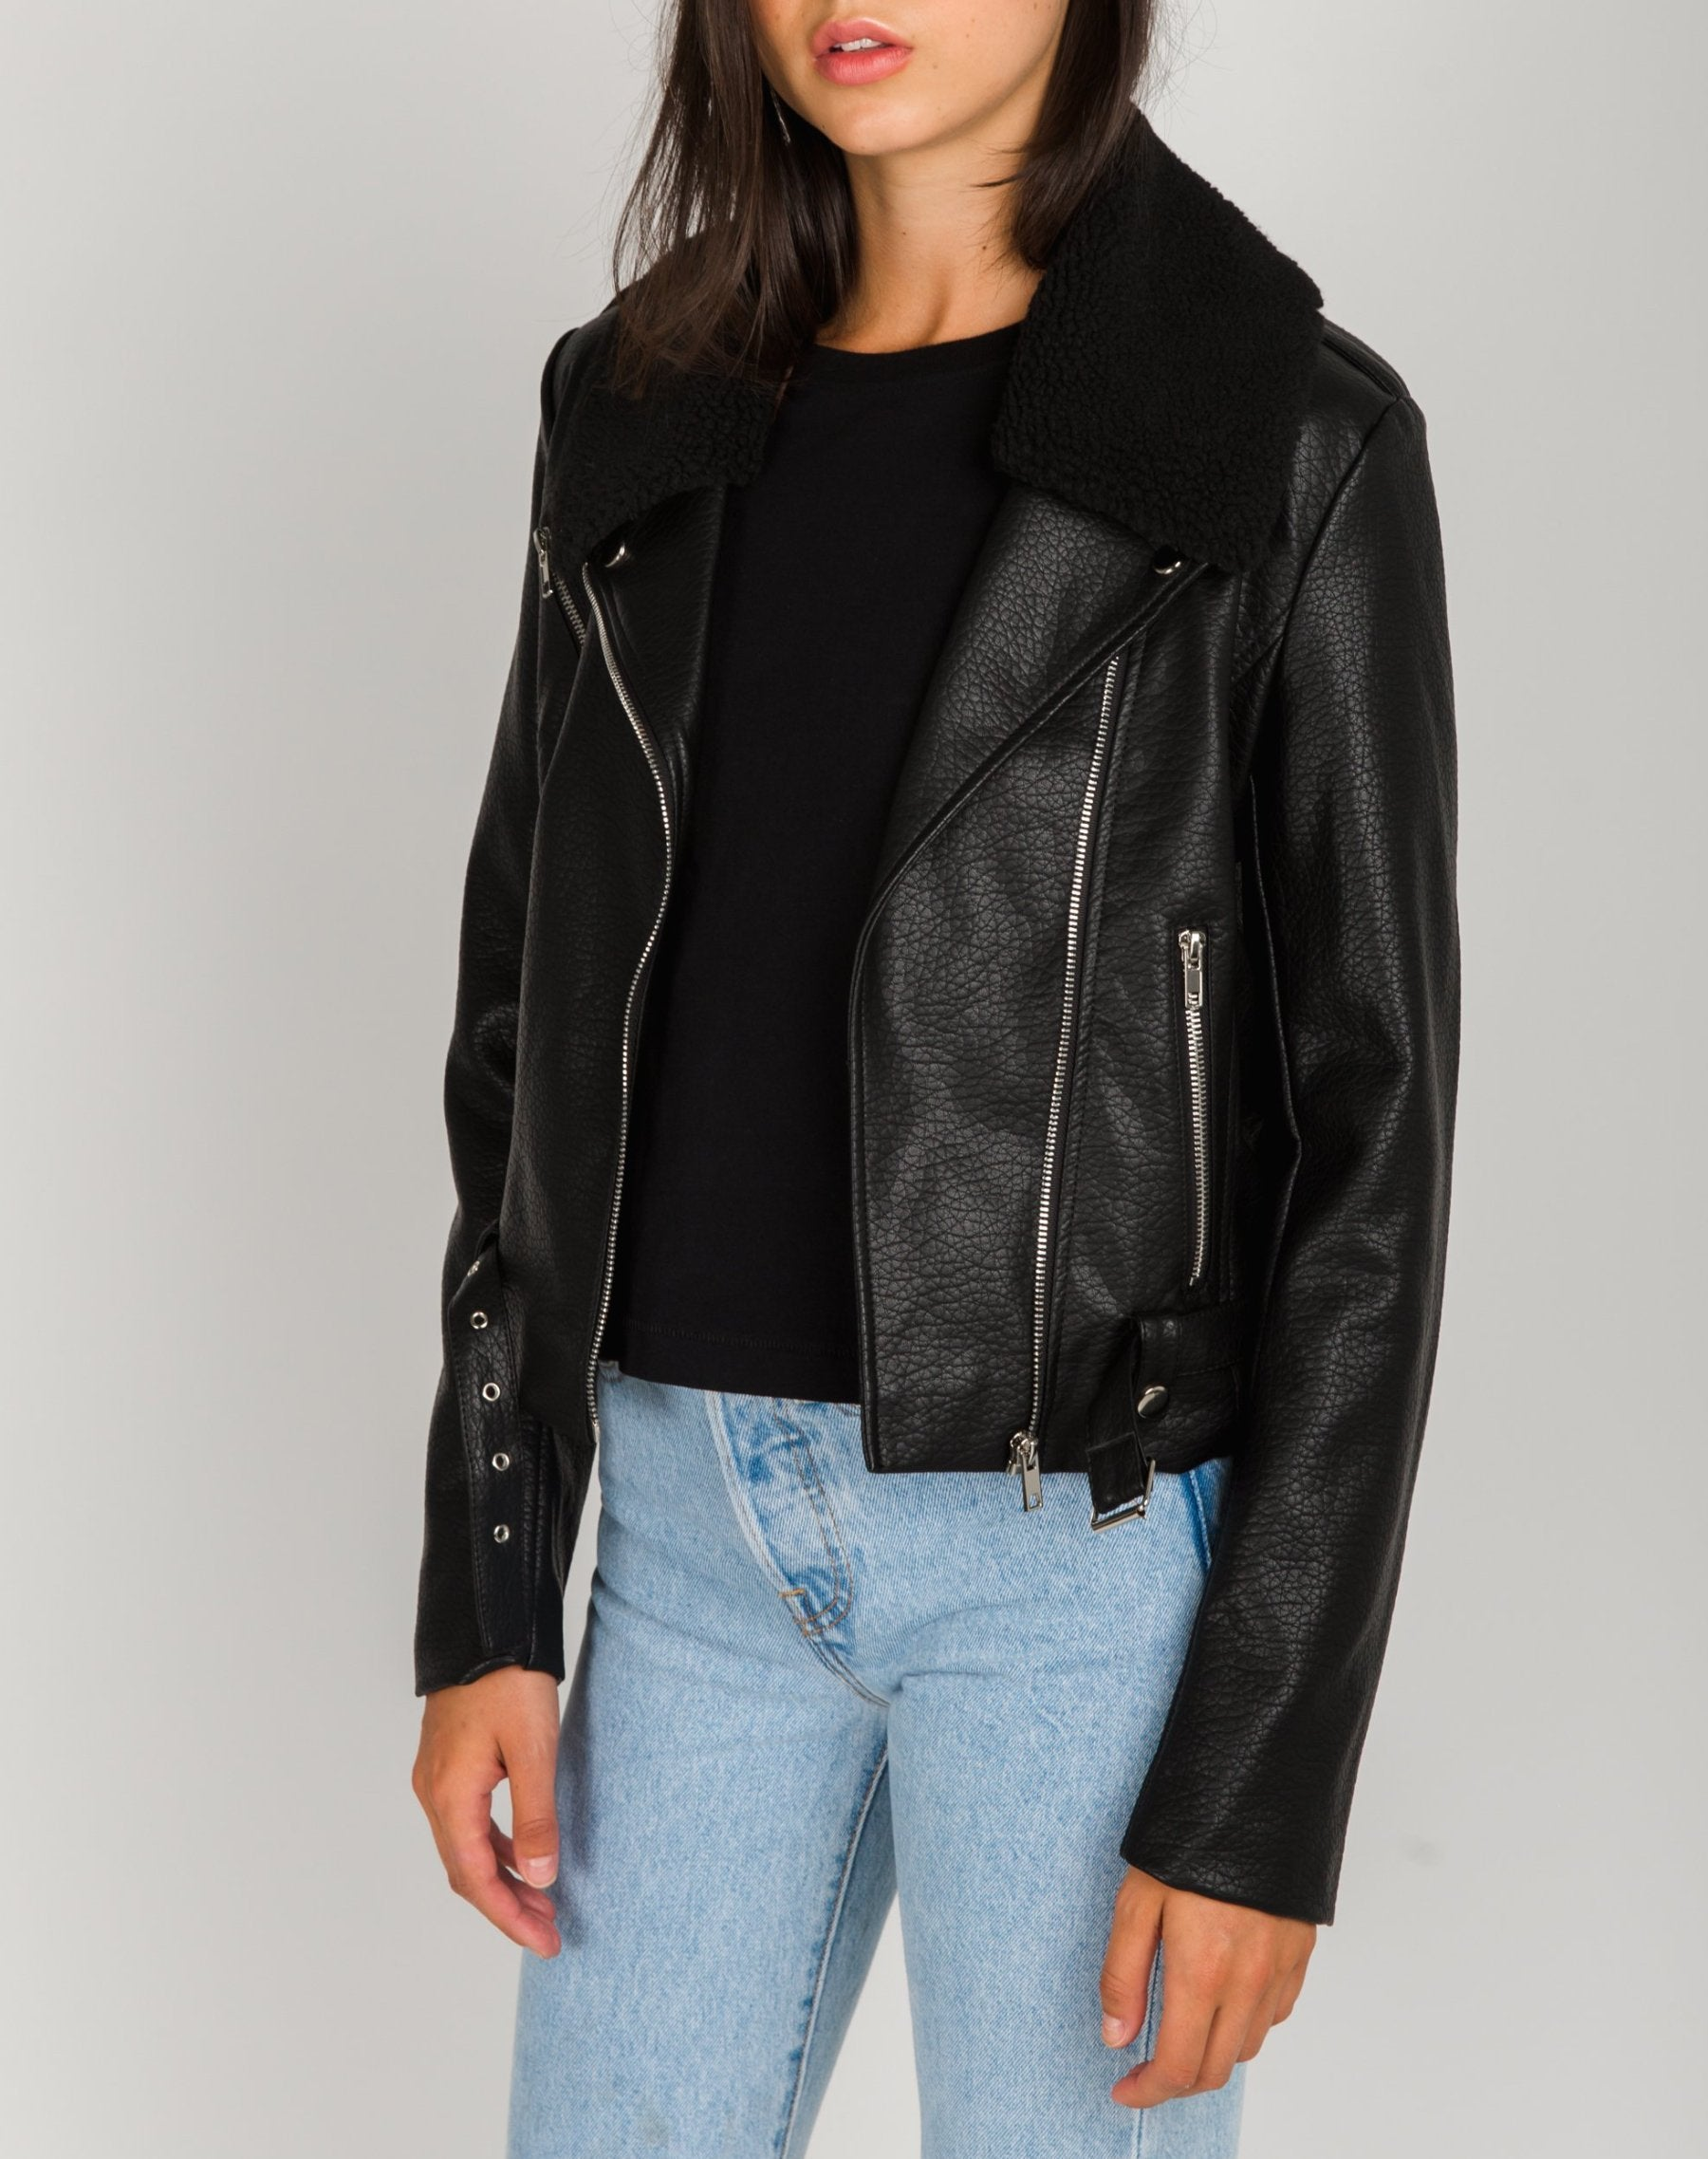 Left side photo of the Florence vegan leather moto jacket with shearling collar in black by Brunette the Label.